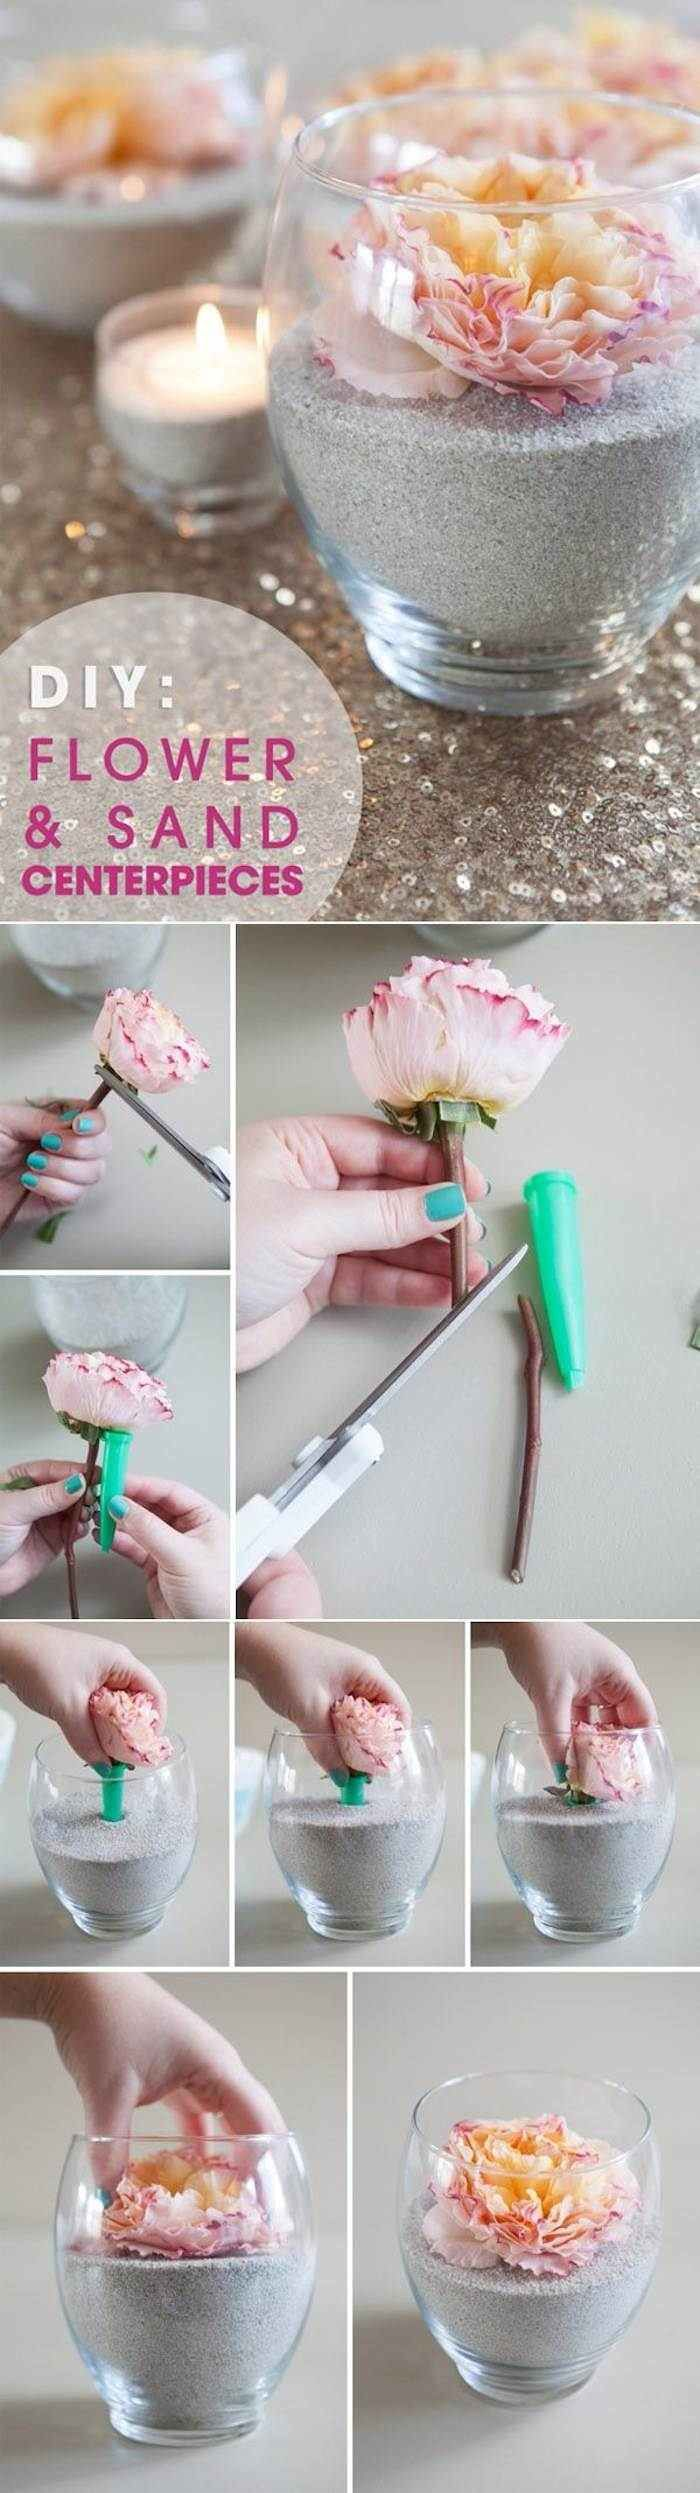 Flower and Sand Centerpieces - DIY Tutorial: Something Turquoise: